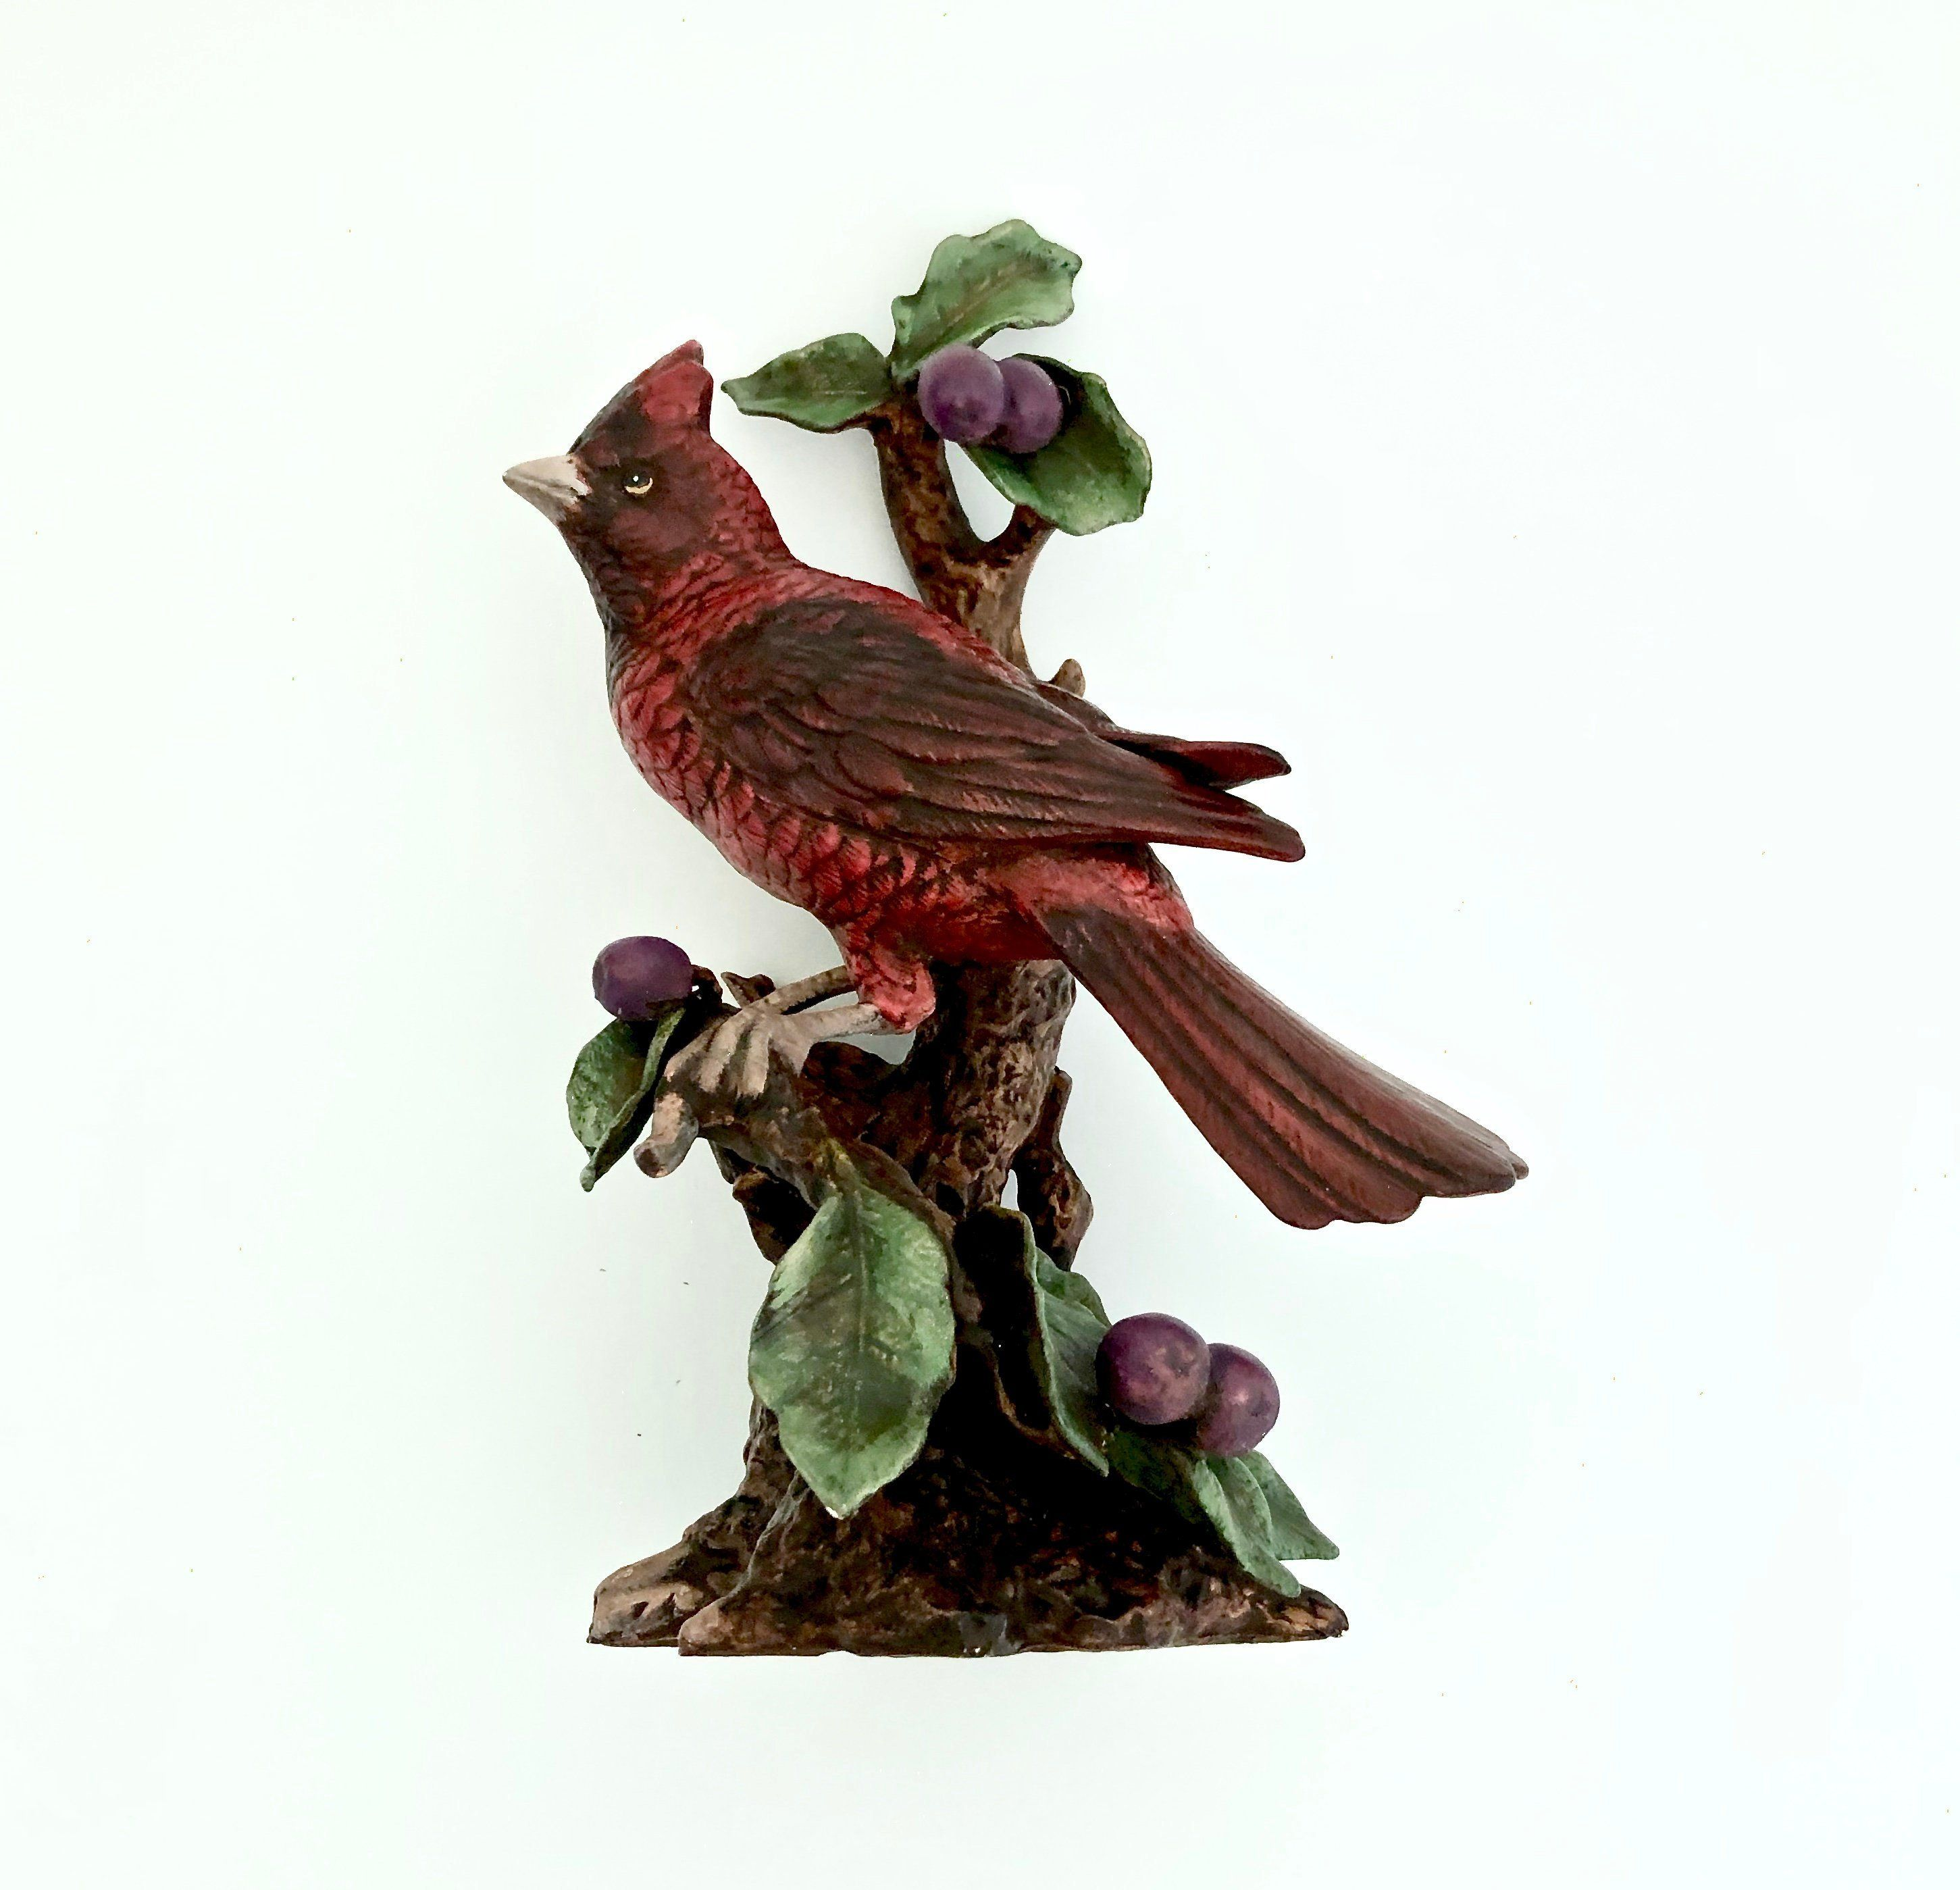 Vintage Cardinal Lifesize Figurine Male Cardinal On A Tree